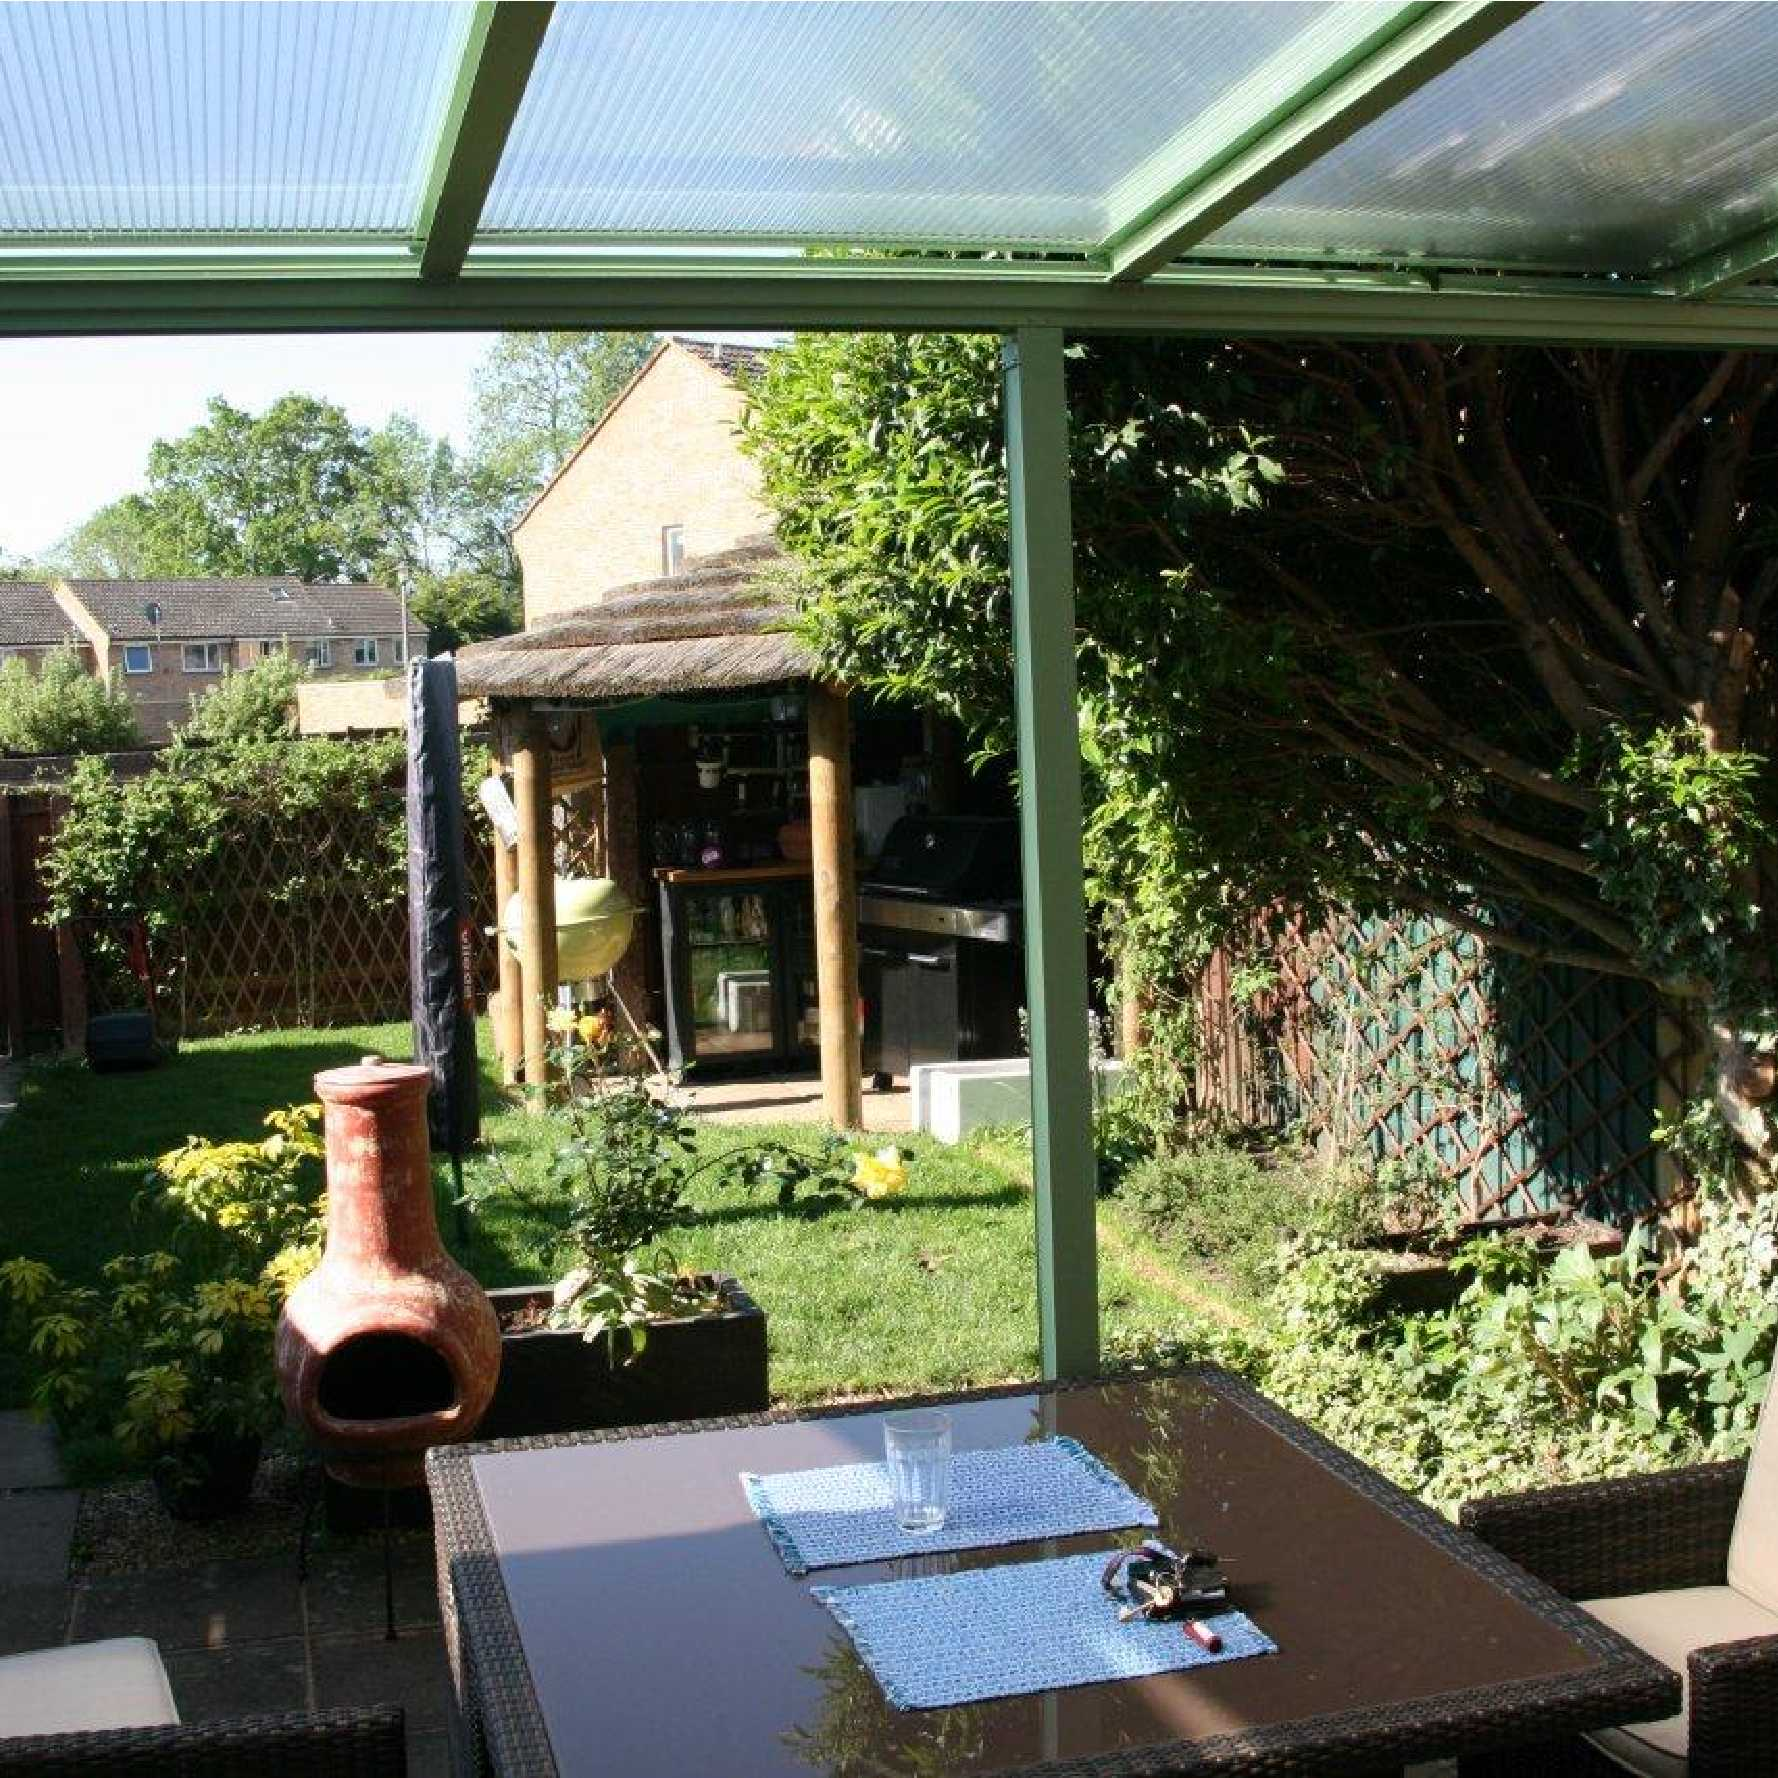 Affordable Omega Smart White Lean-To Canopy with 16mm Polycarbonate Glazing - 6.0m (W) x 2.5m (P), (3) Supporting Posts